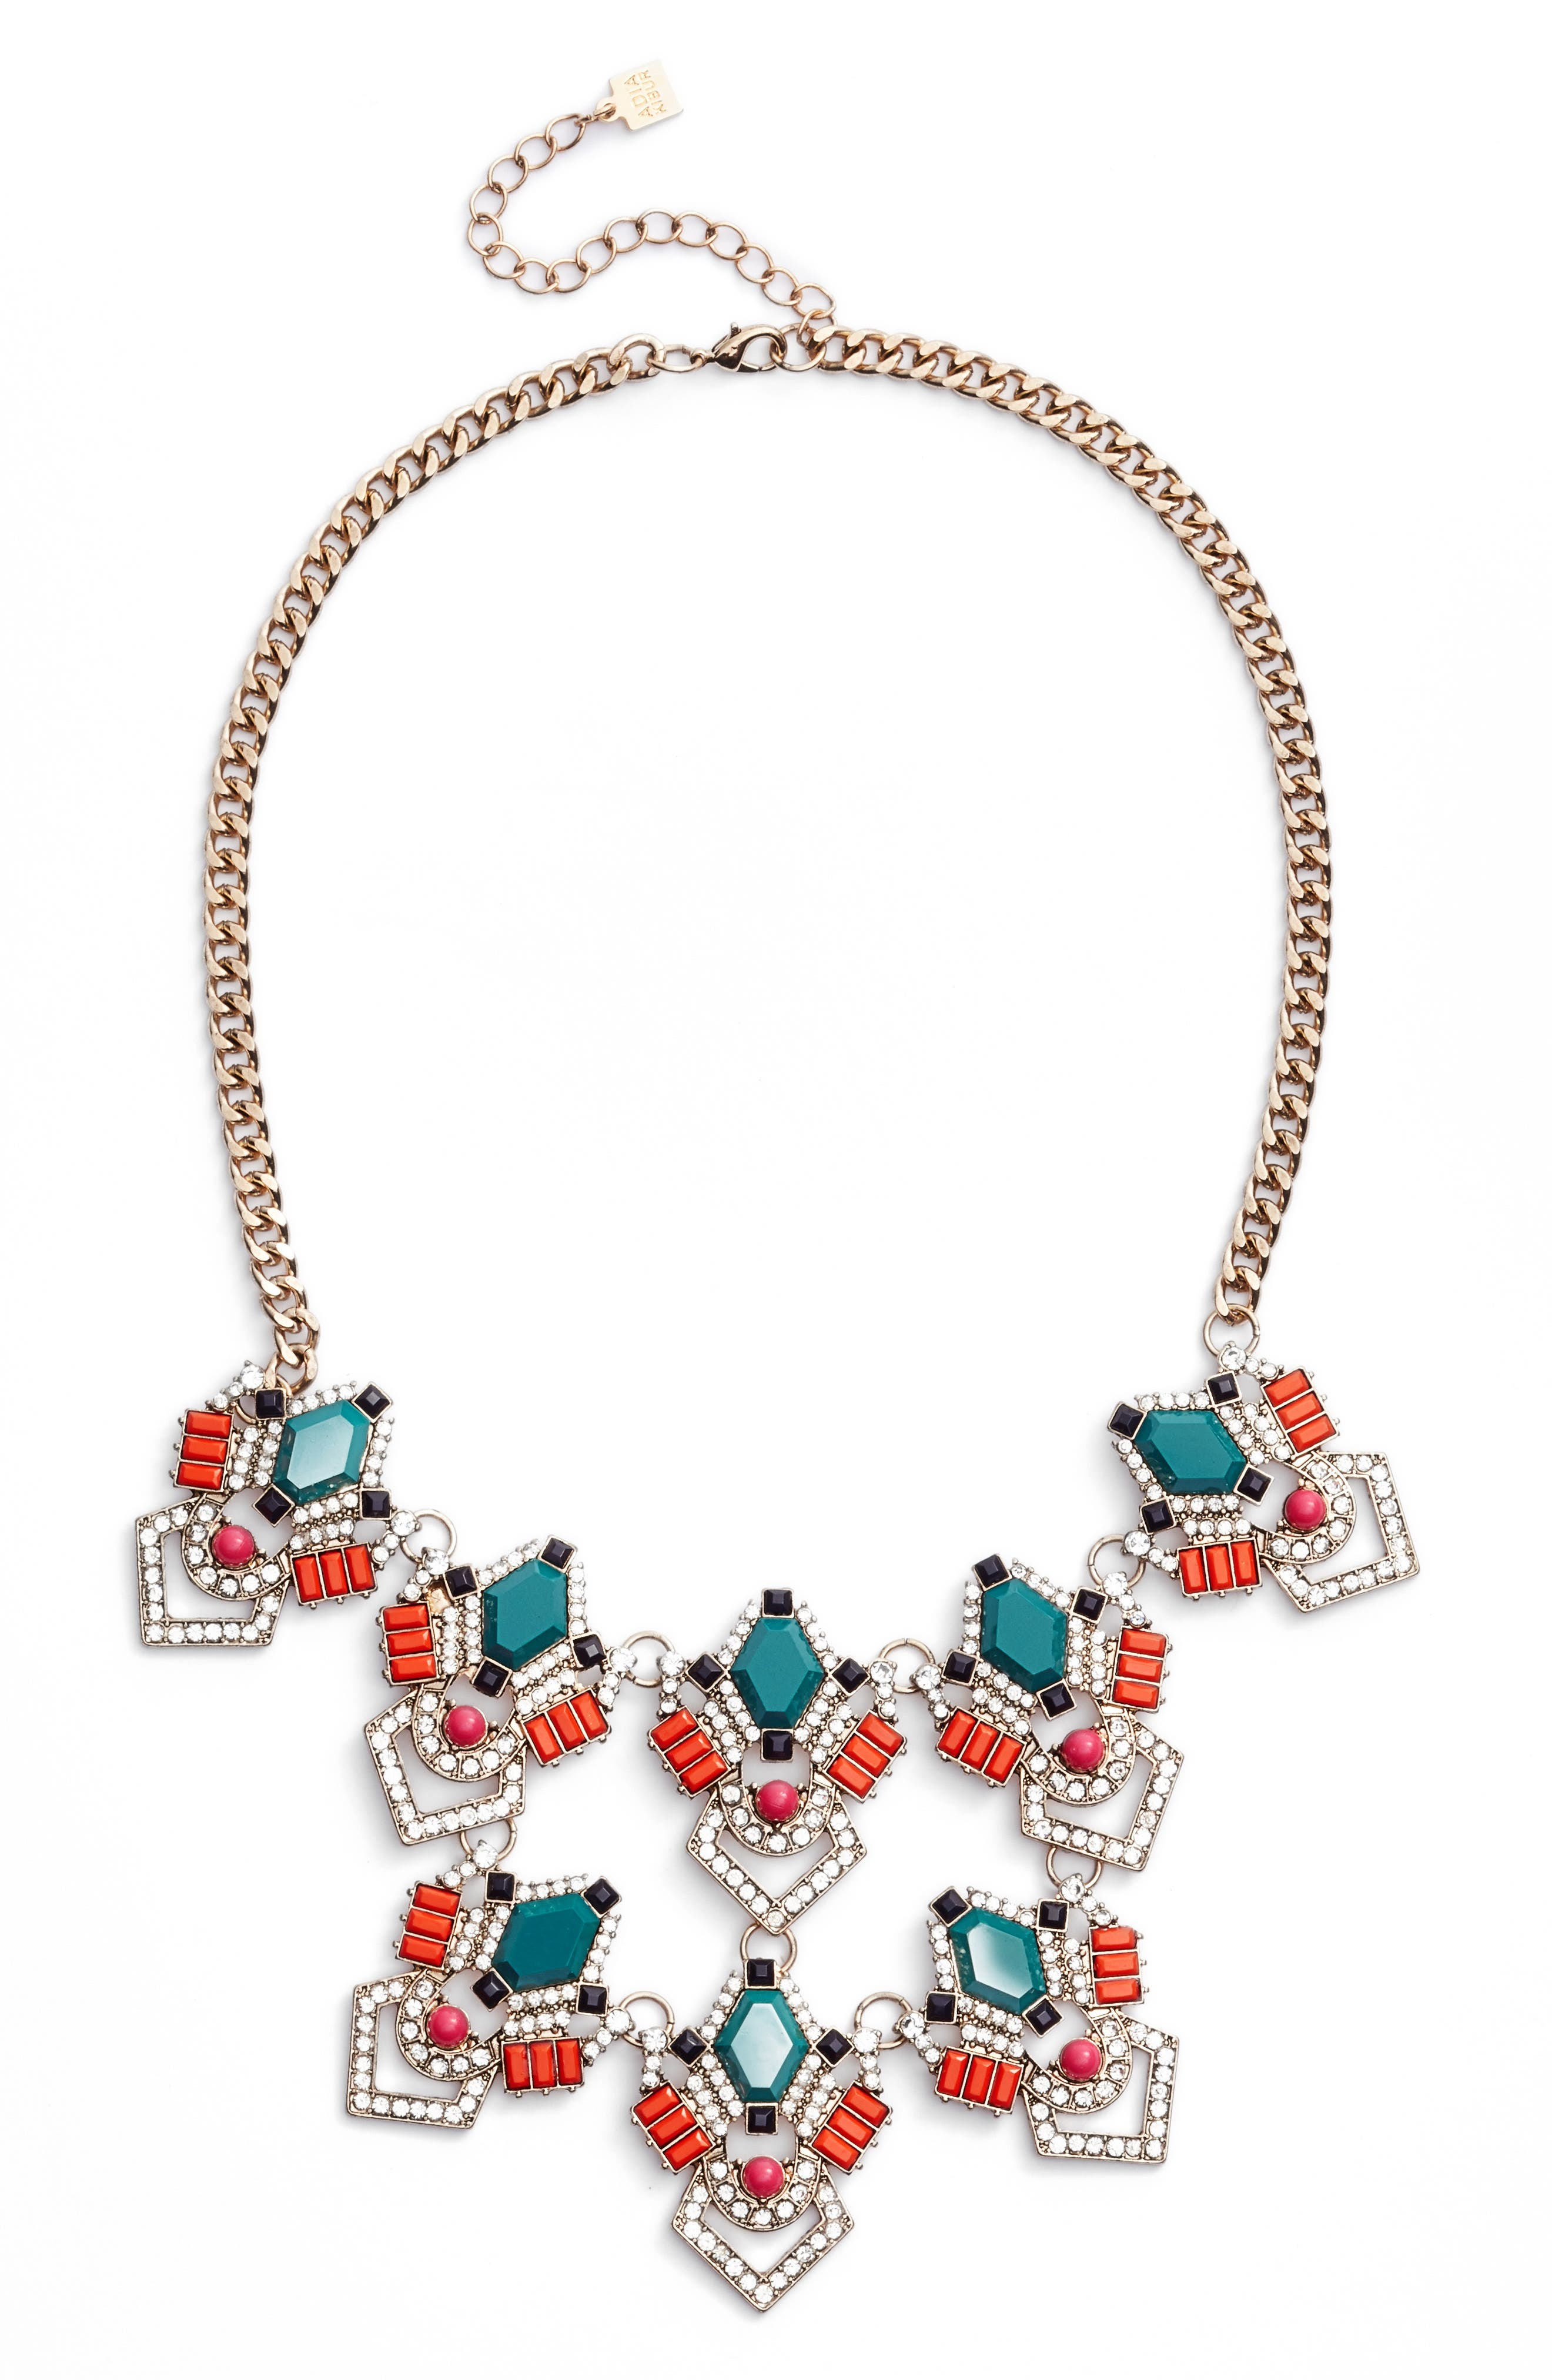 Stone & Crystal Statement Necklace,                             Main thumbnail 1, color,                             Teal